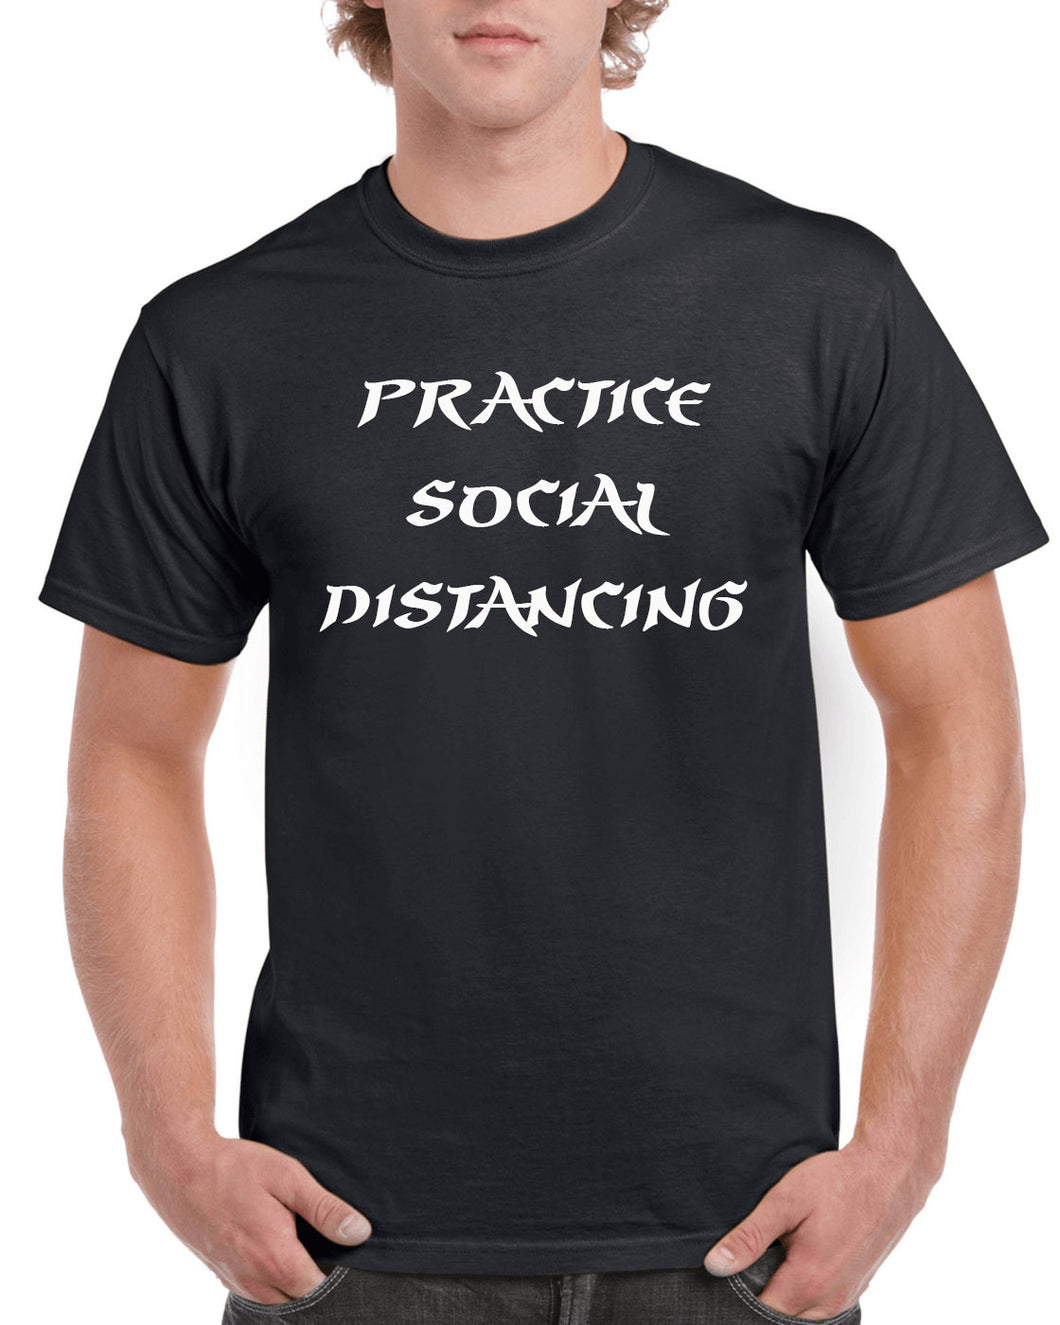 Practice social distancing-funny t-shirt-social distancing t-shirt- Personalized_T-shirts - Galaxie Rouge / Red Galaxy